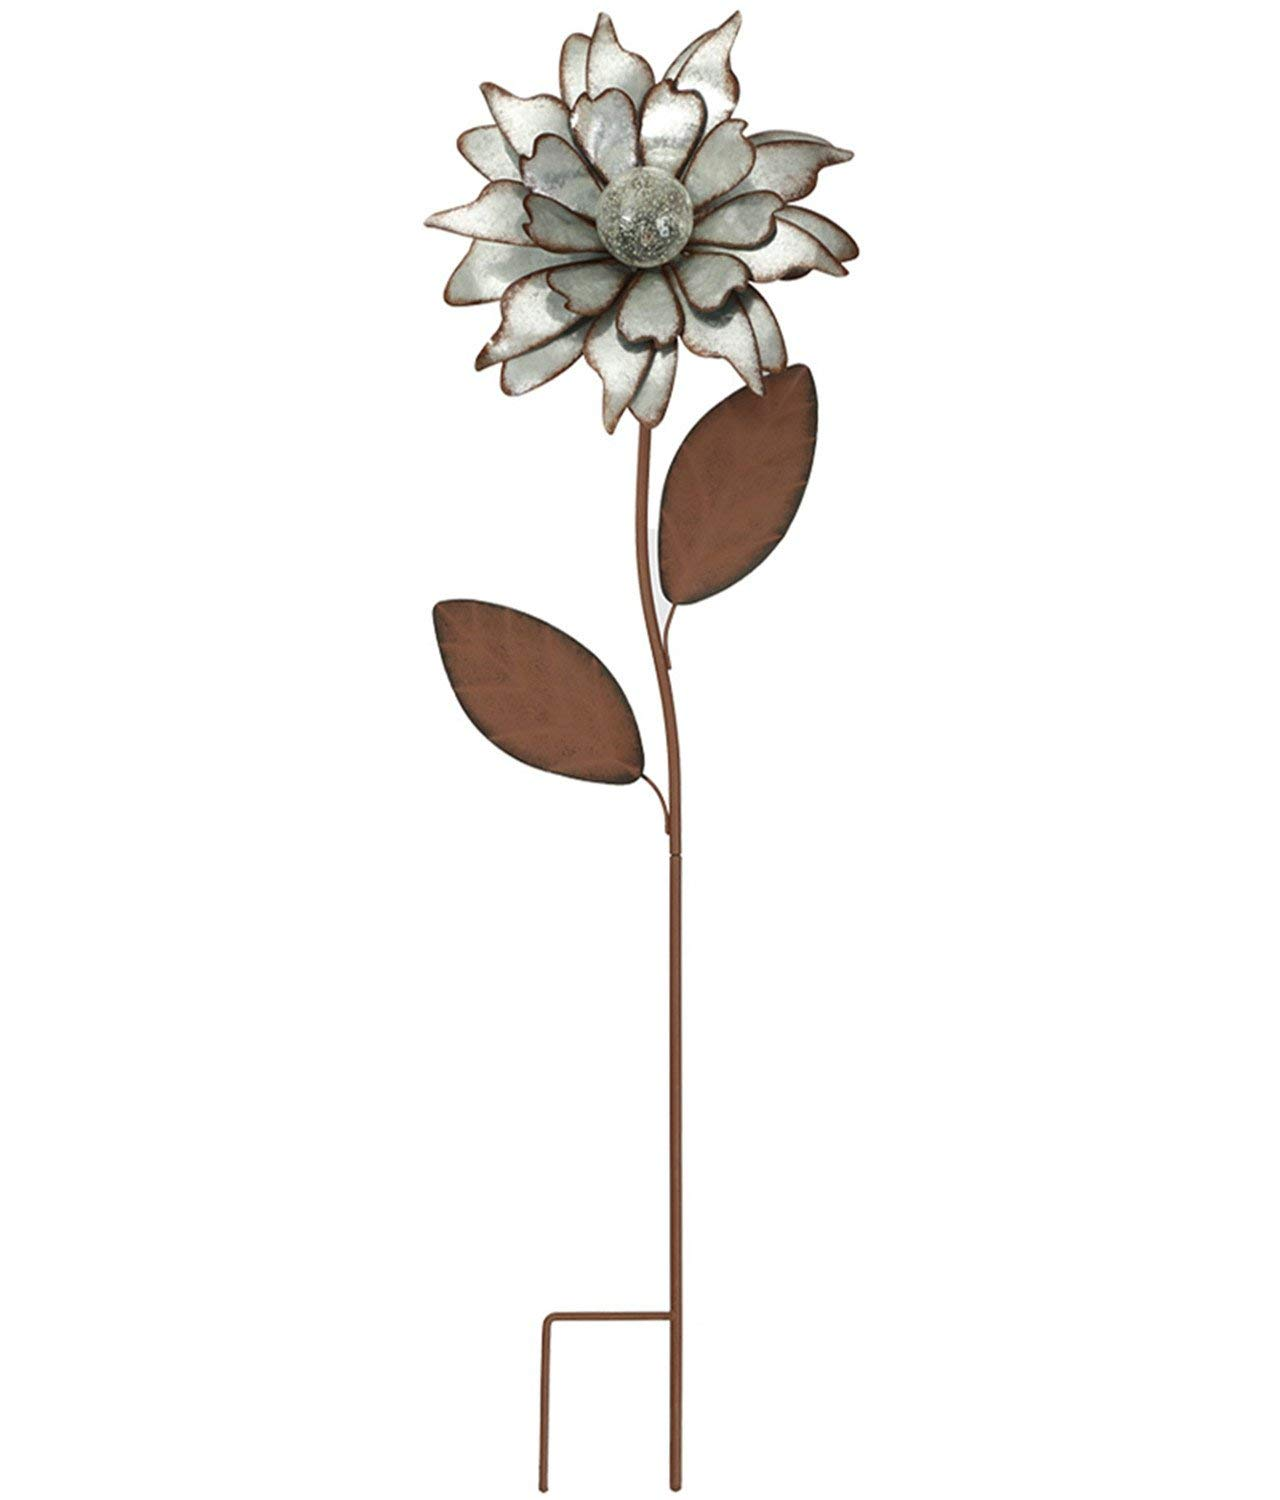 """CEDAR HOME Galvanized Floral Garden Stake Outdoor Glow in Dark Water Proof Metal Stick Art Ornament Decor for Lawn Yard Patio, 12"""" W x 3.5"""" D x 35"""" H, Rose"""